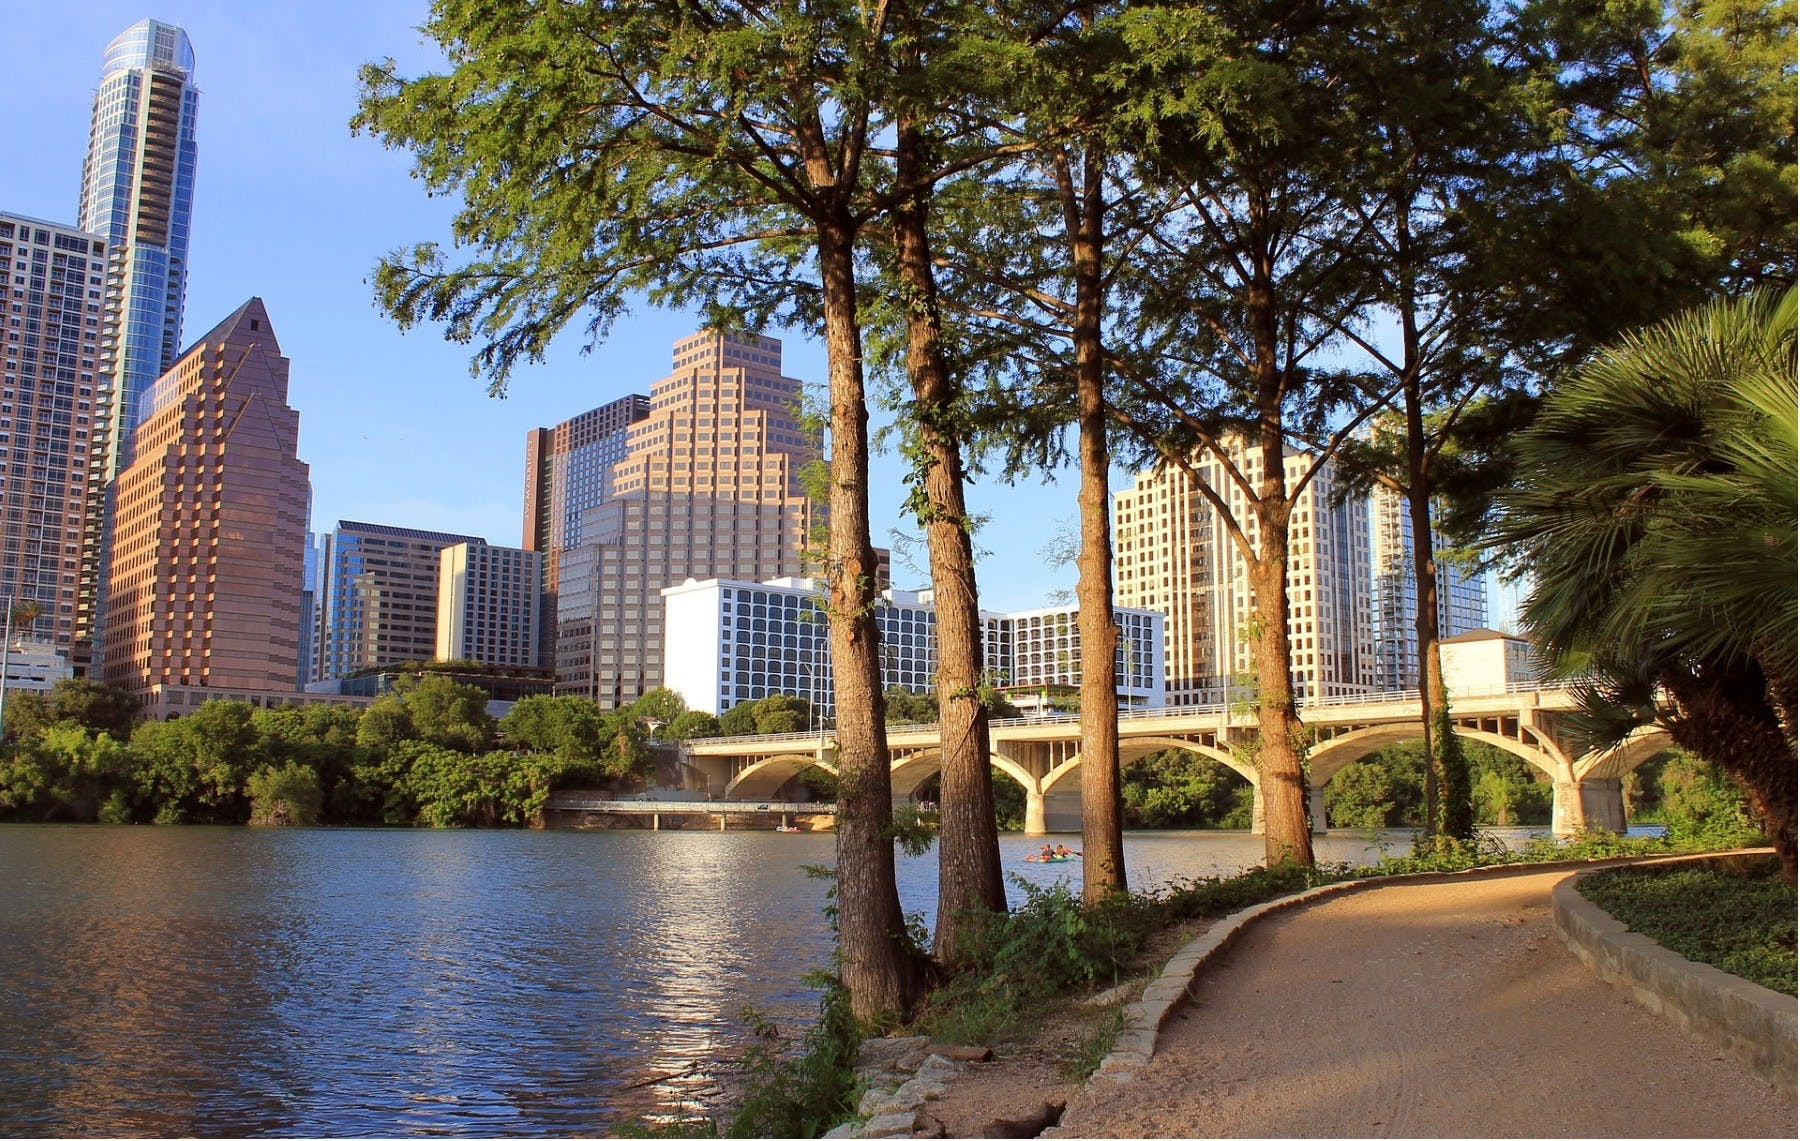 Shore of Lady Bird Lake in the city